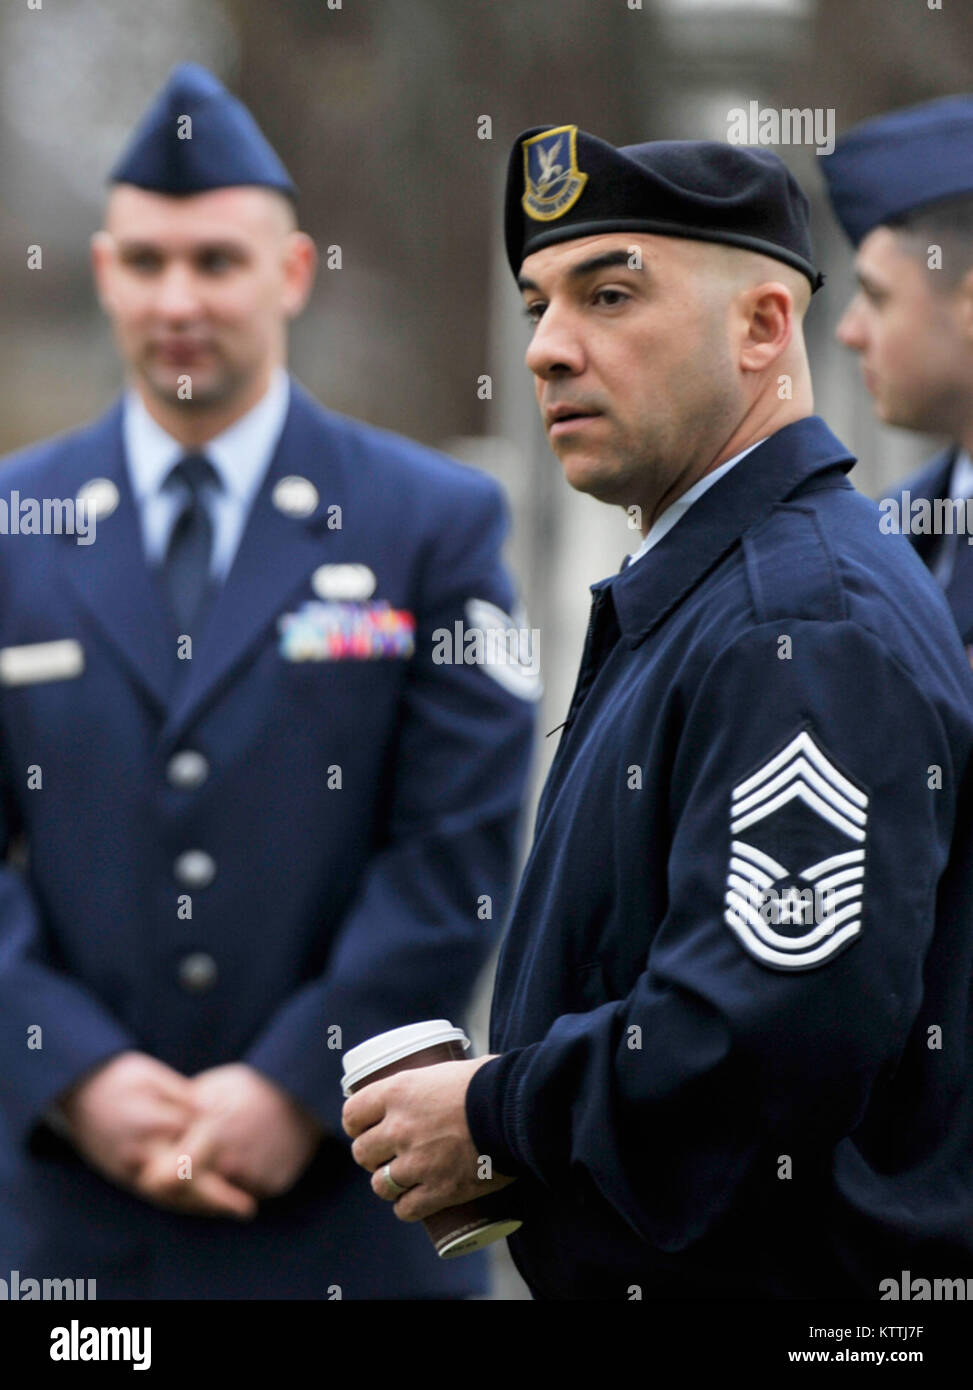 New York Air National Guard Color Guard, Chief Master Sgt. Josh Cawfee, marks the 235th birthday of President Martin Van Buren during a wreath laying ceremony at Van Buren's grave site in Kinderhook, New York on Tuesday, December 5th. The annual event recognizes the former President Martin Van Buren, a Columbia County native who died on July 24, 1862 in Kinderhook, N.Y. He was born on December 5, 1782. The United States Military honors former presidents by laying wreaths presented by the current president at their gravesites on the anniversary of their birth. ( New York Air Guard photo by TSgt Stock Photo